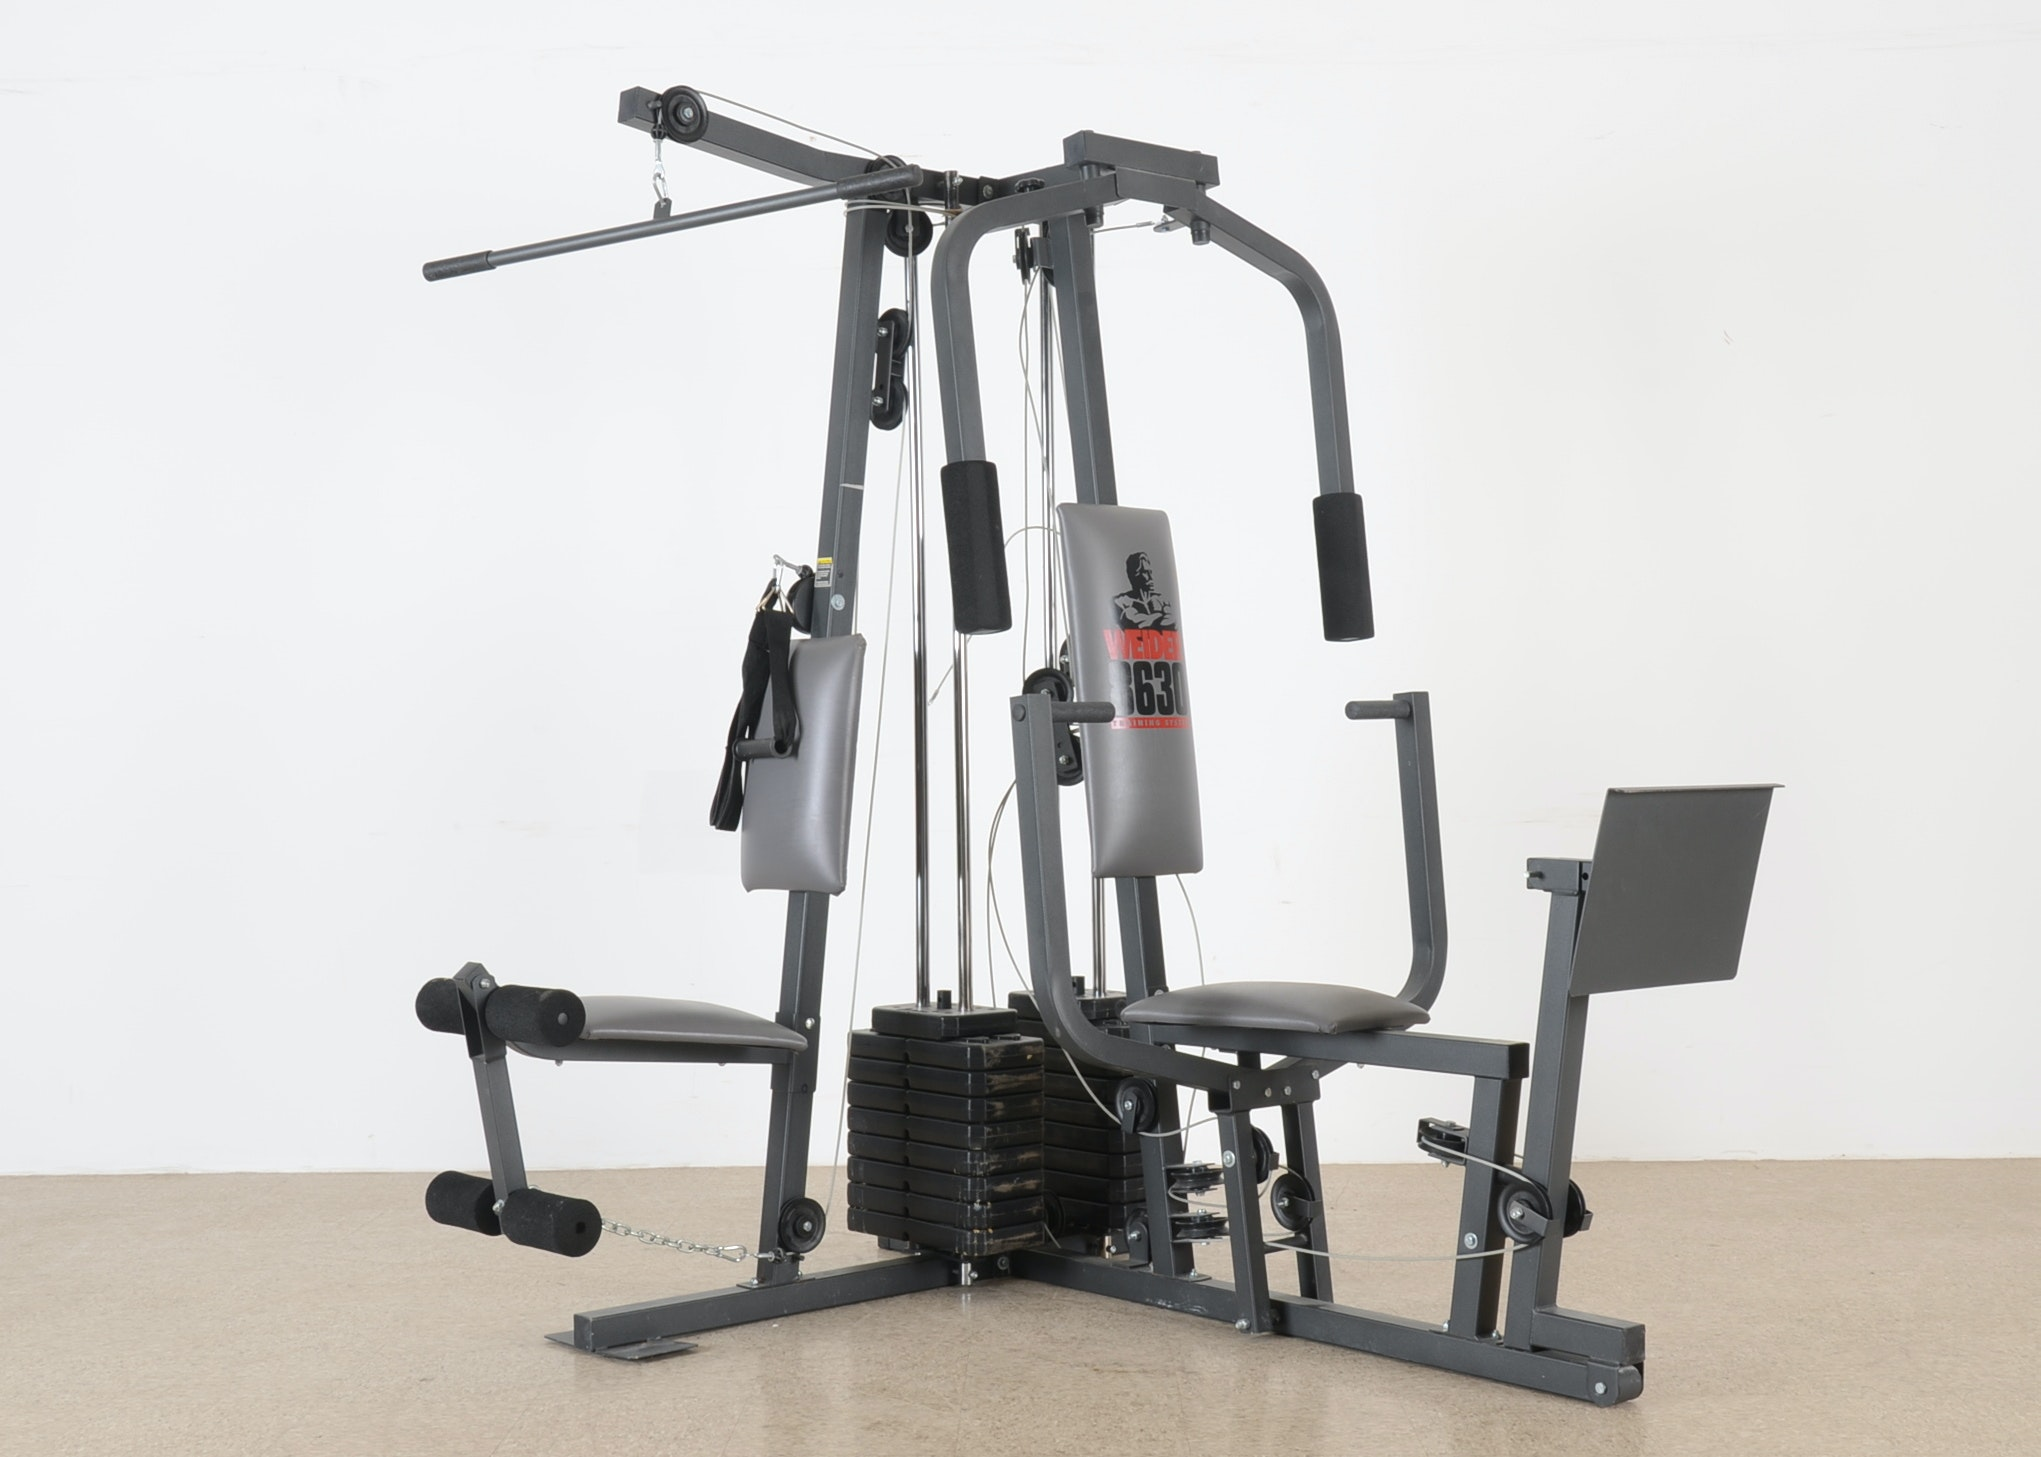 Weider 8630 Training System Home Gym